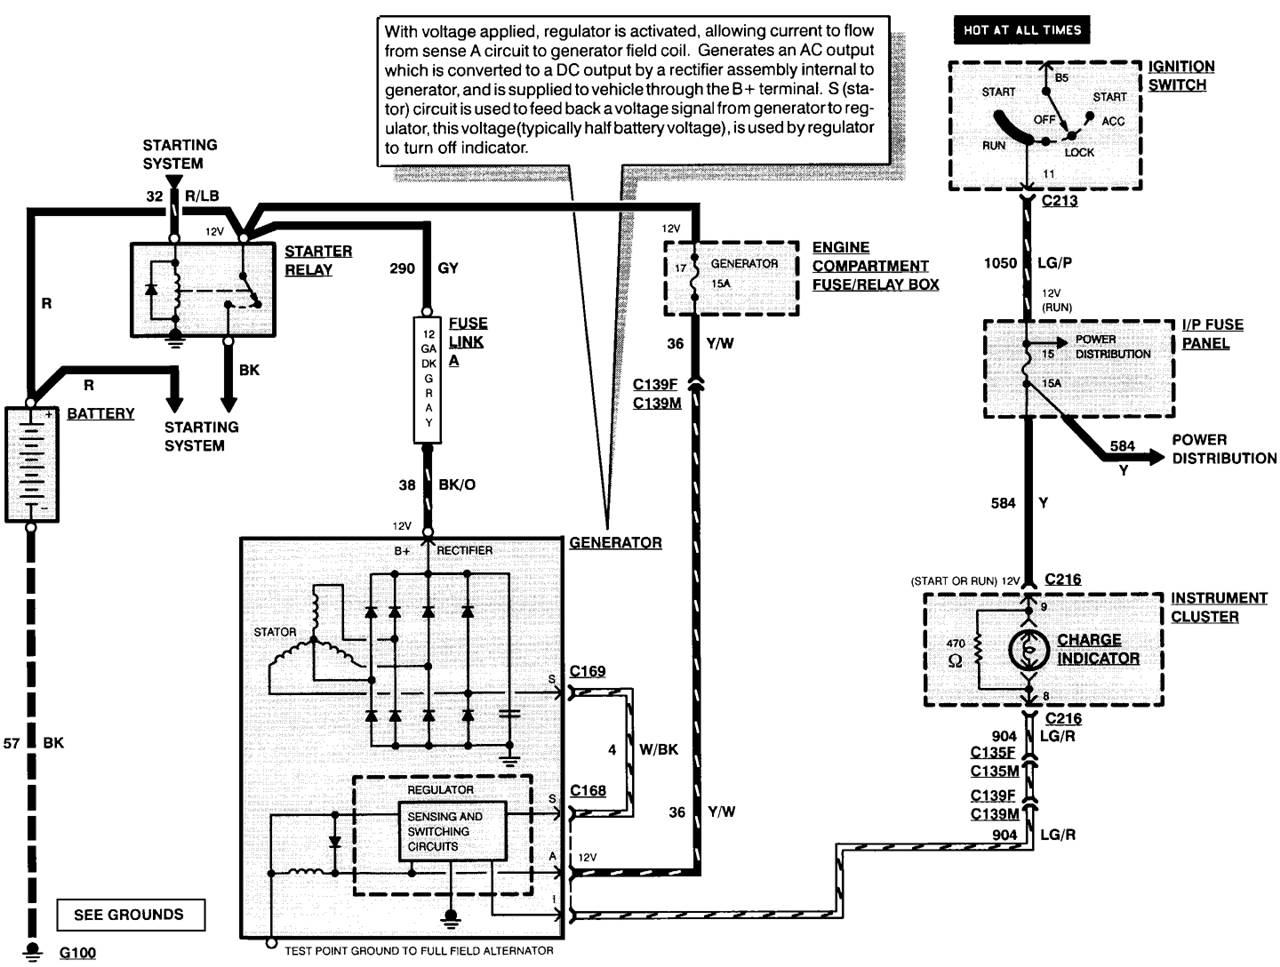 hight resolution of ford alternator regulator wiring diagram wiring diagram databasewrg alt wiring diagram